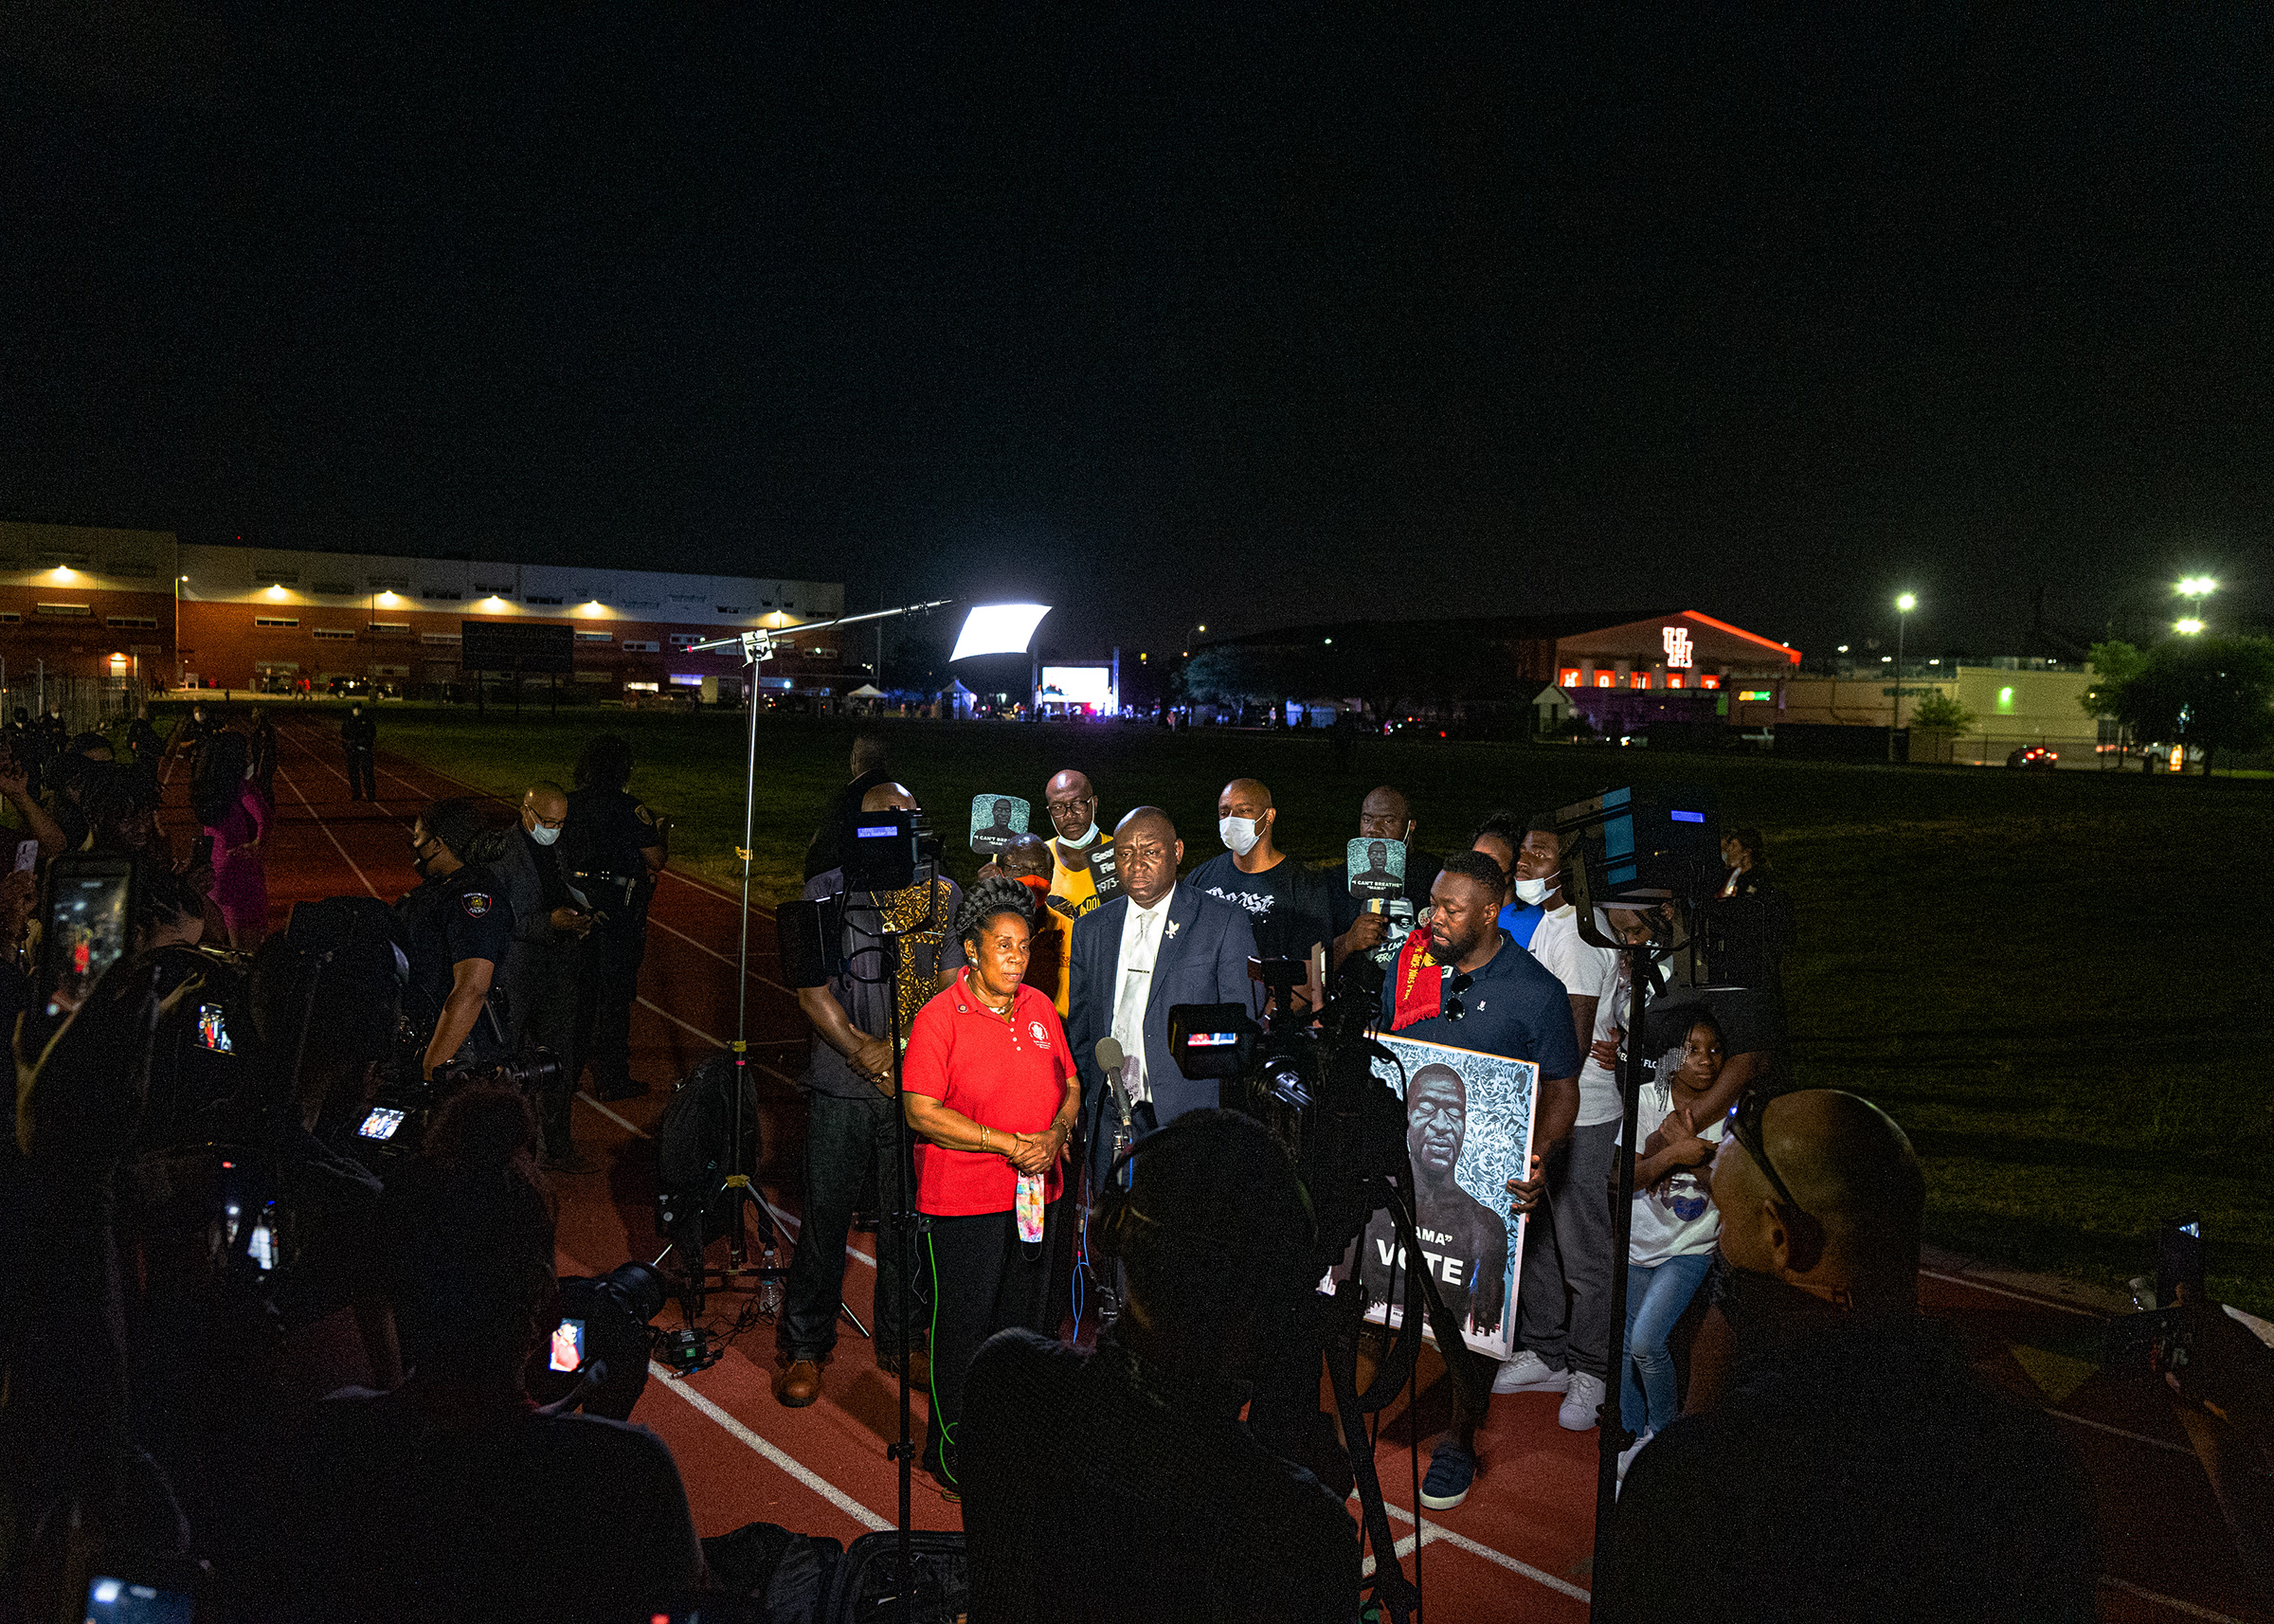 Rep. Sheila Jackson Lee, left, D-Texas, joins the Floyd family, family attorney Ben Crump to speak to reporter after a candlelight vigil honoring George Floyd at Jack Yates High School in Houston on June 8.